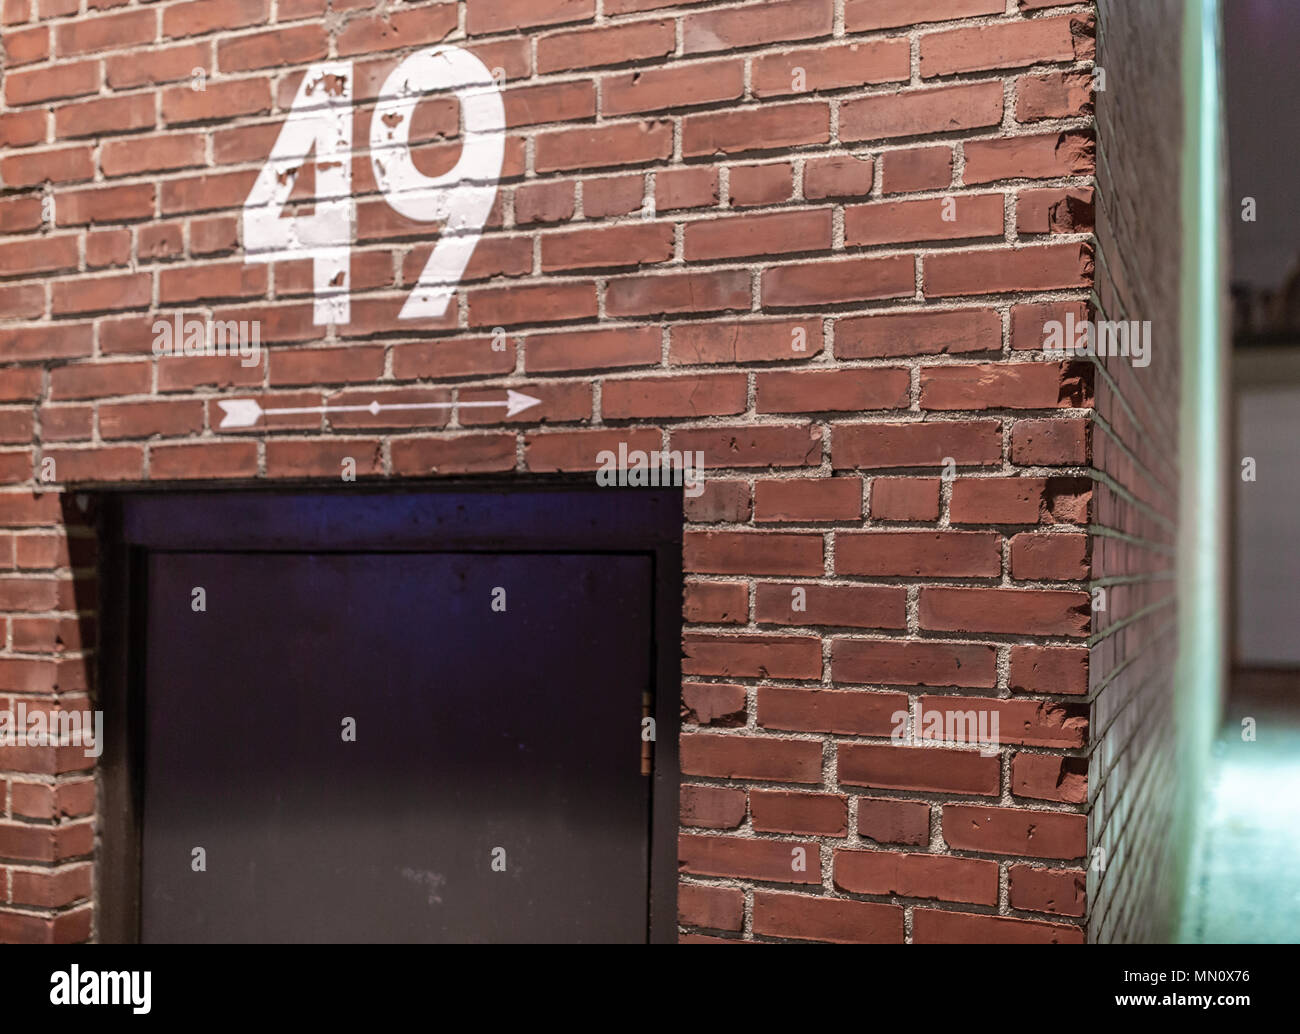 number 49 painted on a brick wall with a painted white arrow point down the side of the industrial building above a black door - Stock Image